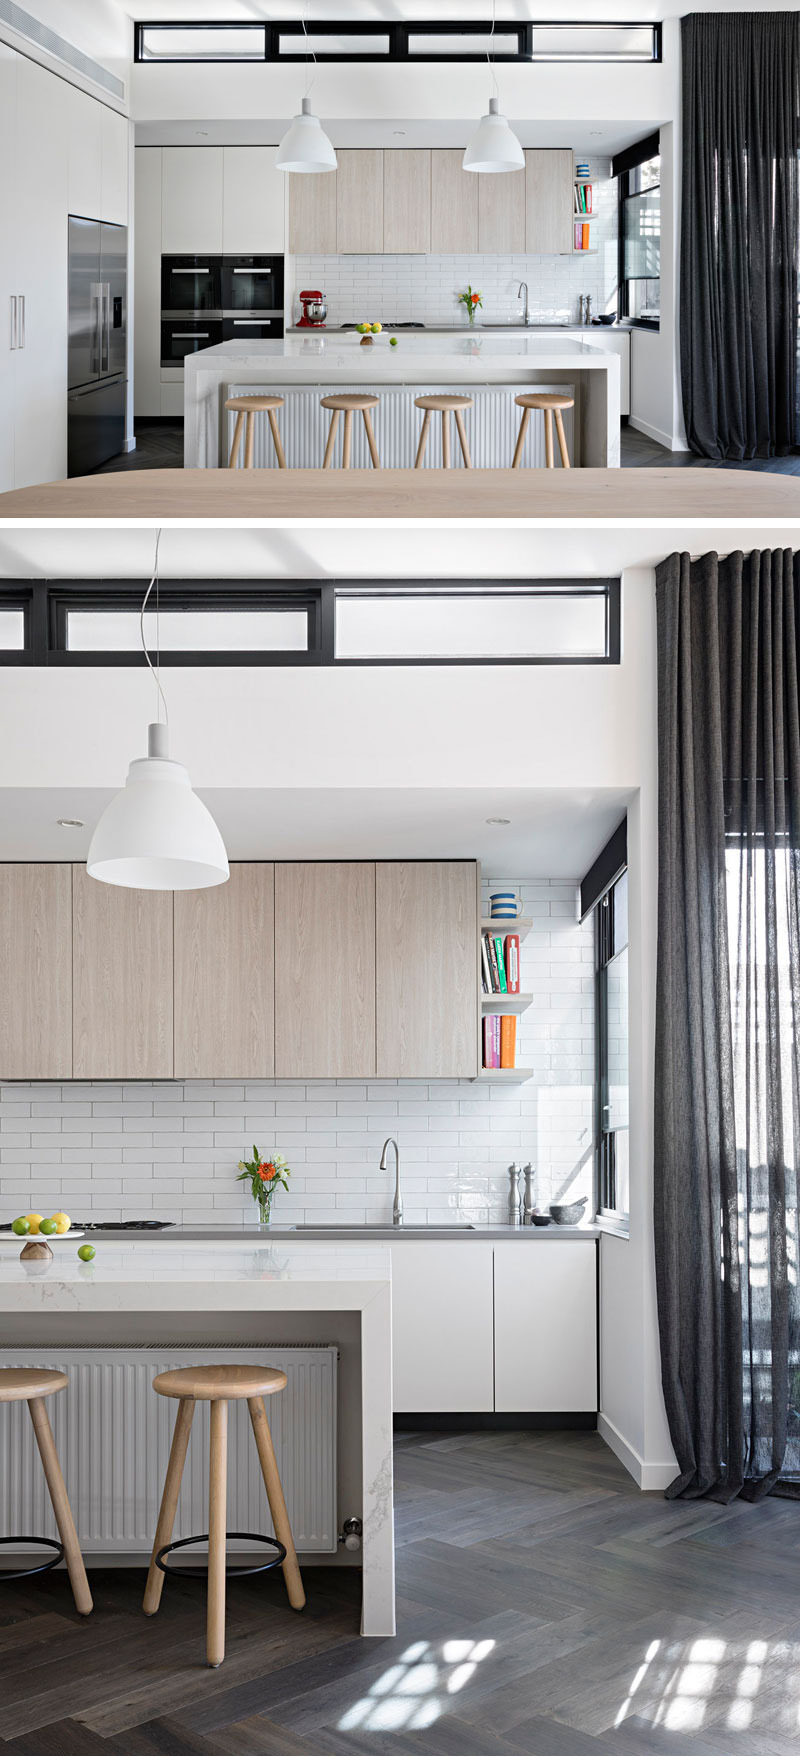 The modern kitchen has a large white island that sits below two pendant lamps. White rectangular tiles have been used as a backsplash, below light wood cabinets.